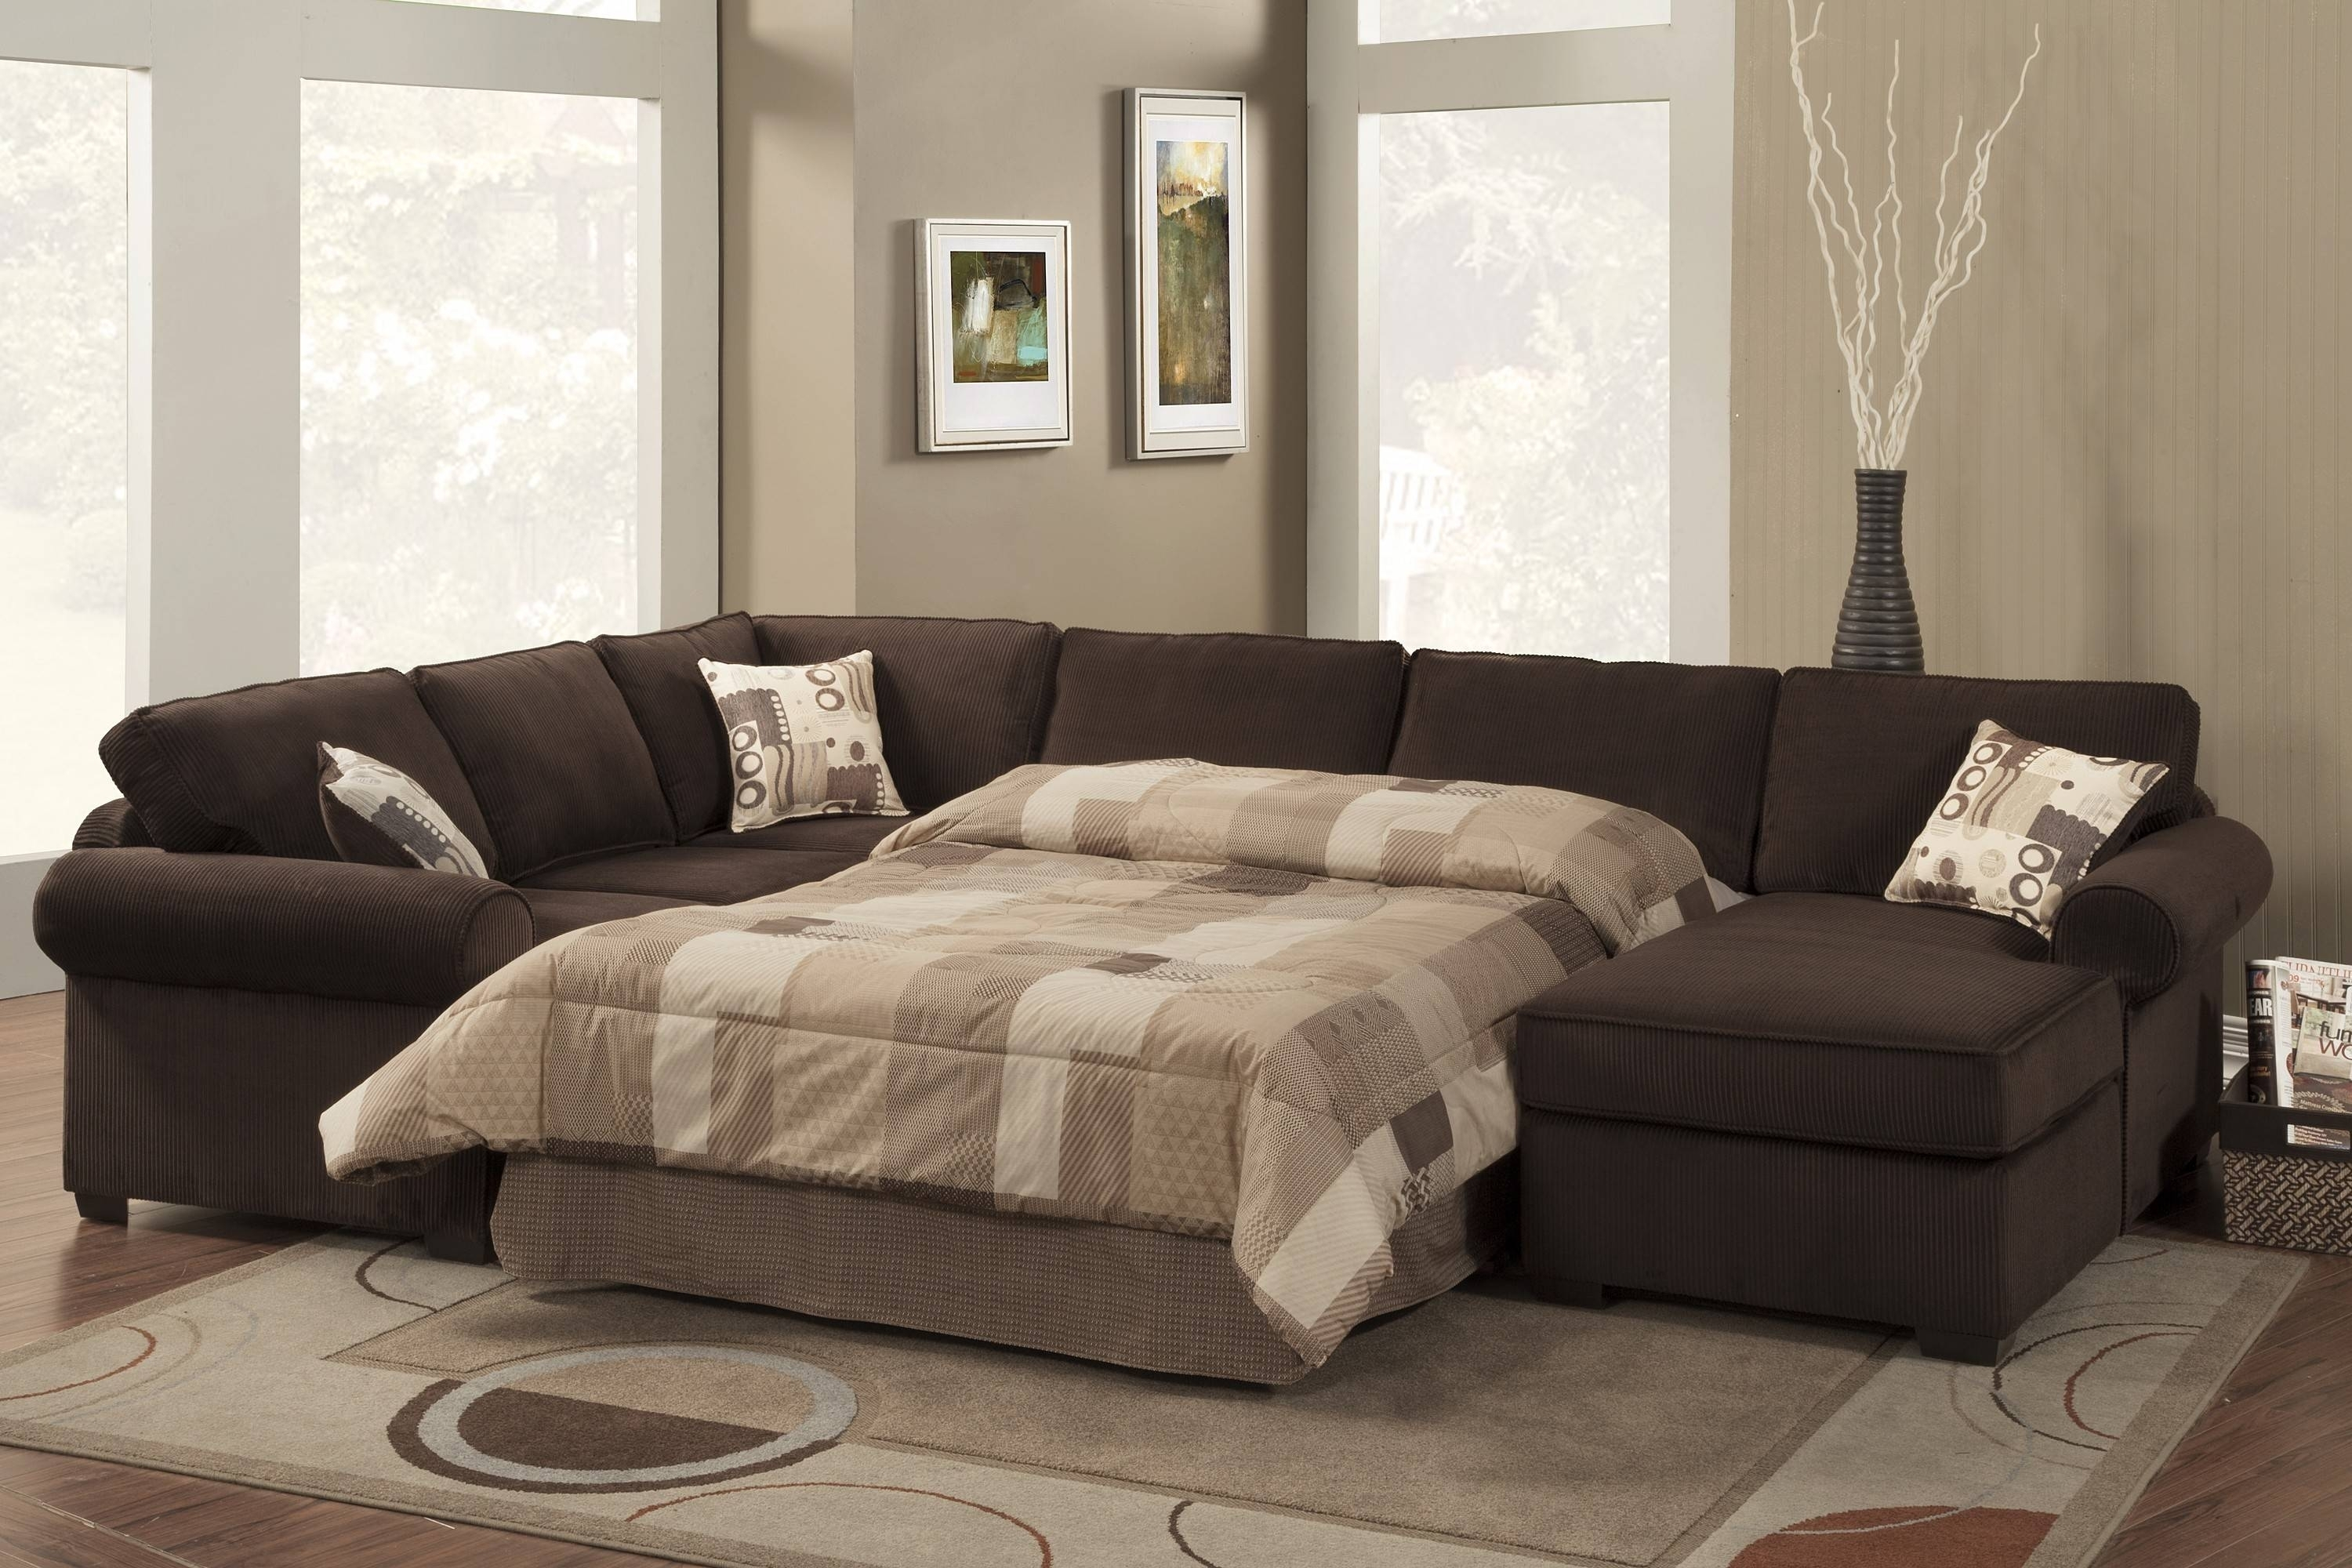 Cheap Sectional Sofas With Wide Sectional Couch With New Sectional for Sectional Sofas (Image 1 of 10)